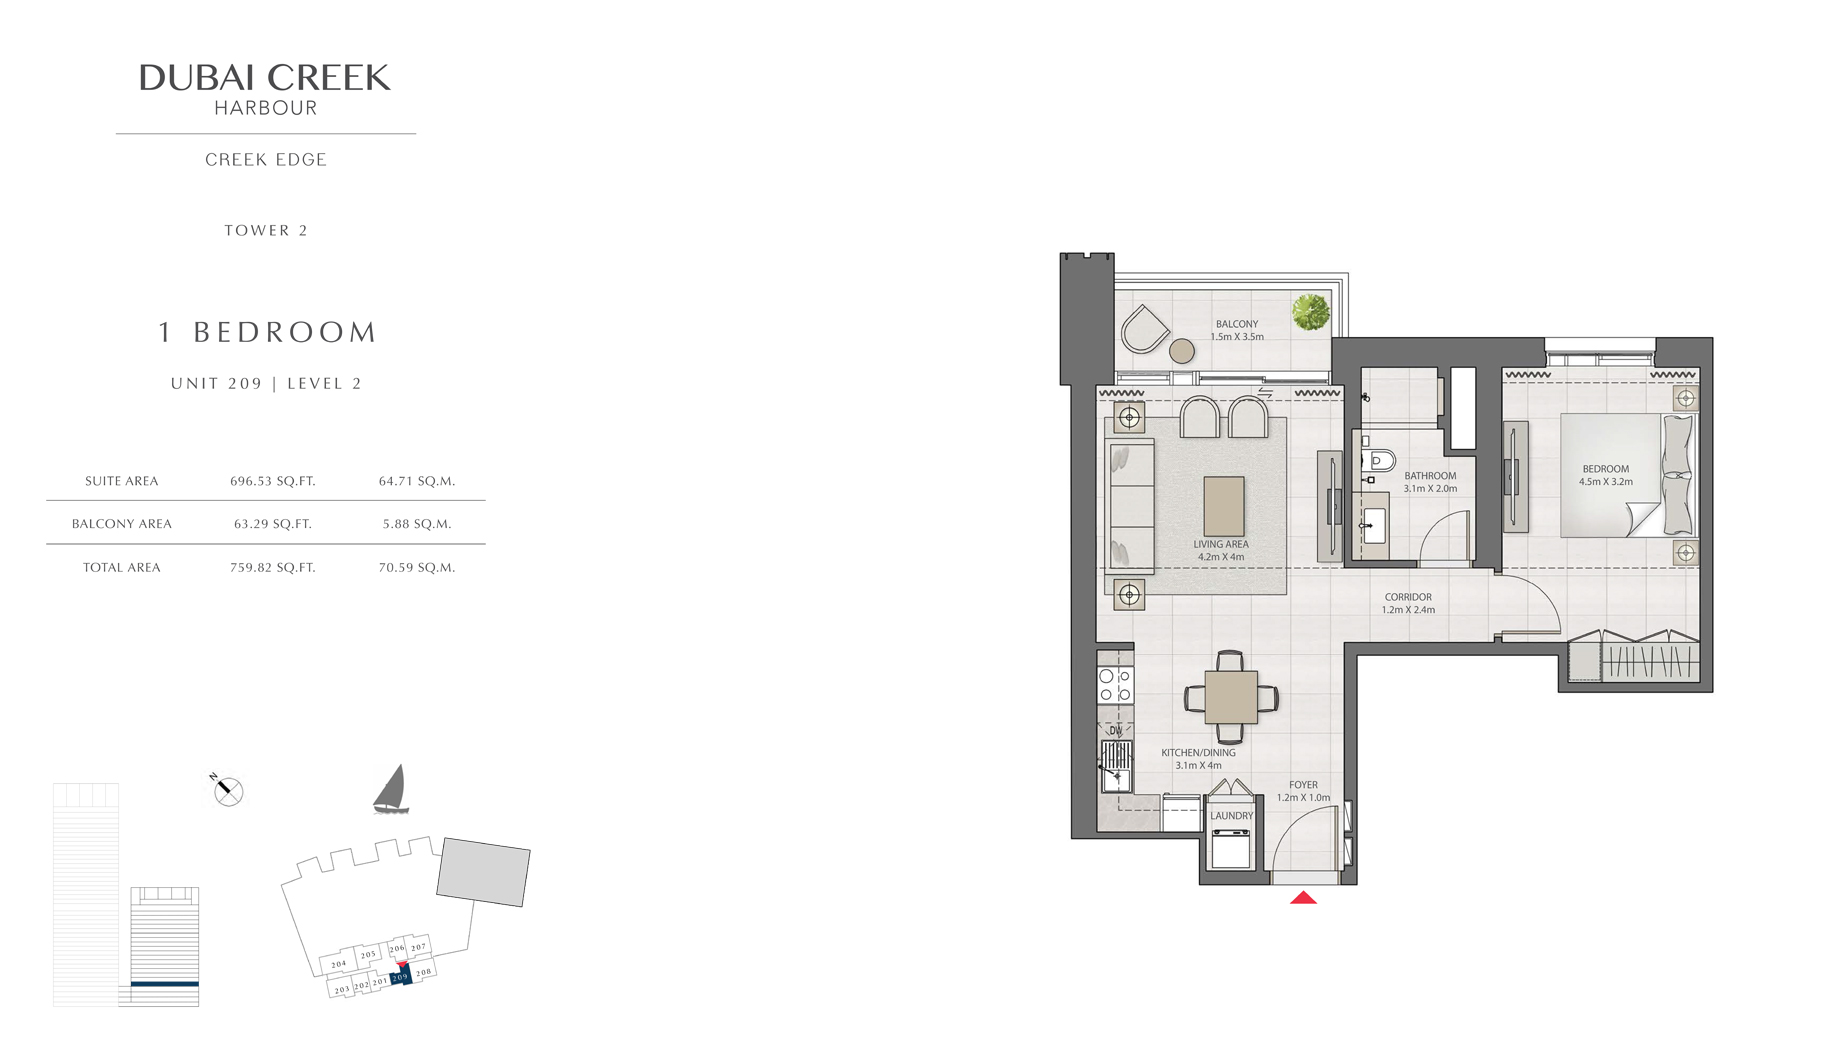 1 Bedroom Tower 2 Unit 209 Level 2 Size 759 sq.ft